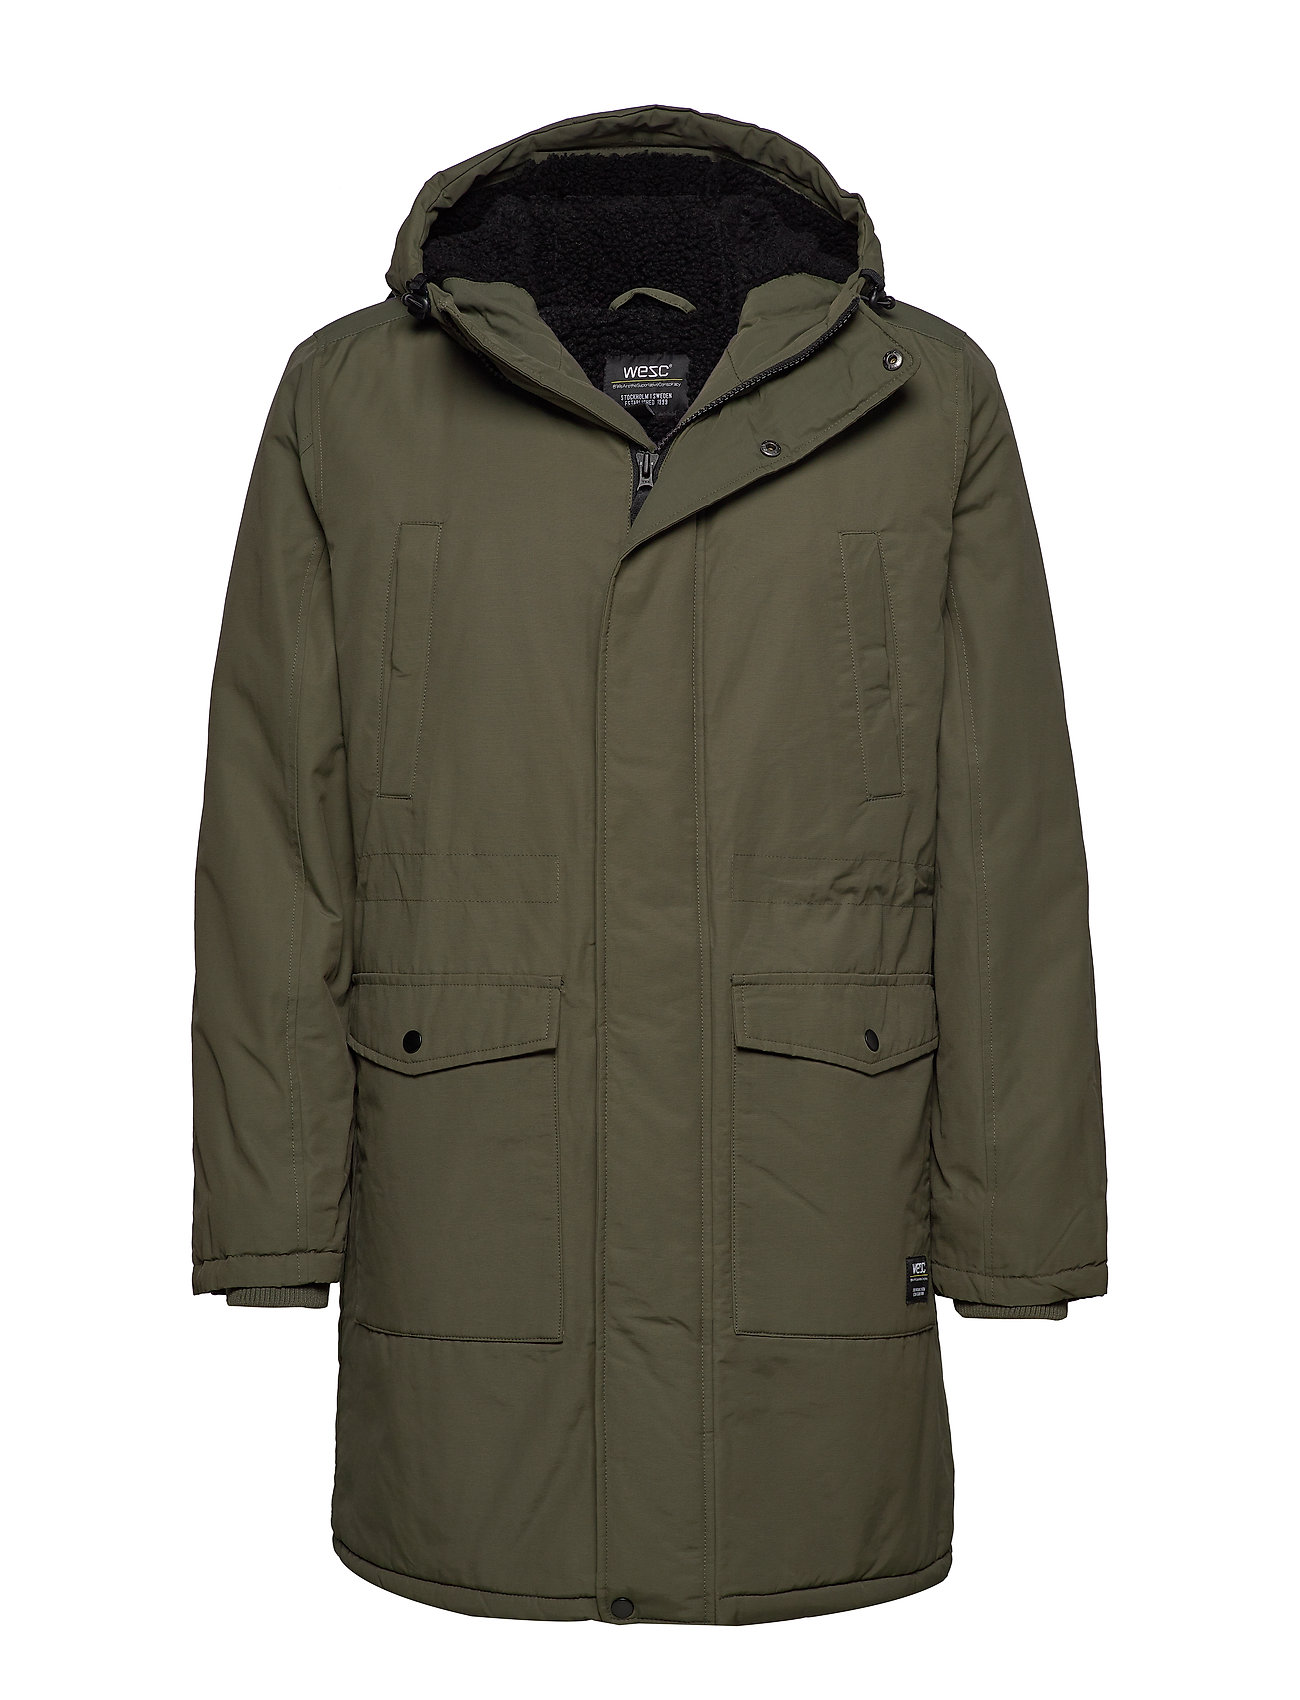 WeSC WINTER PARKA - OLIVE NIGHT